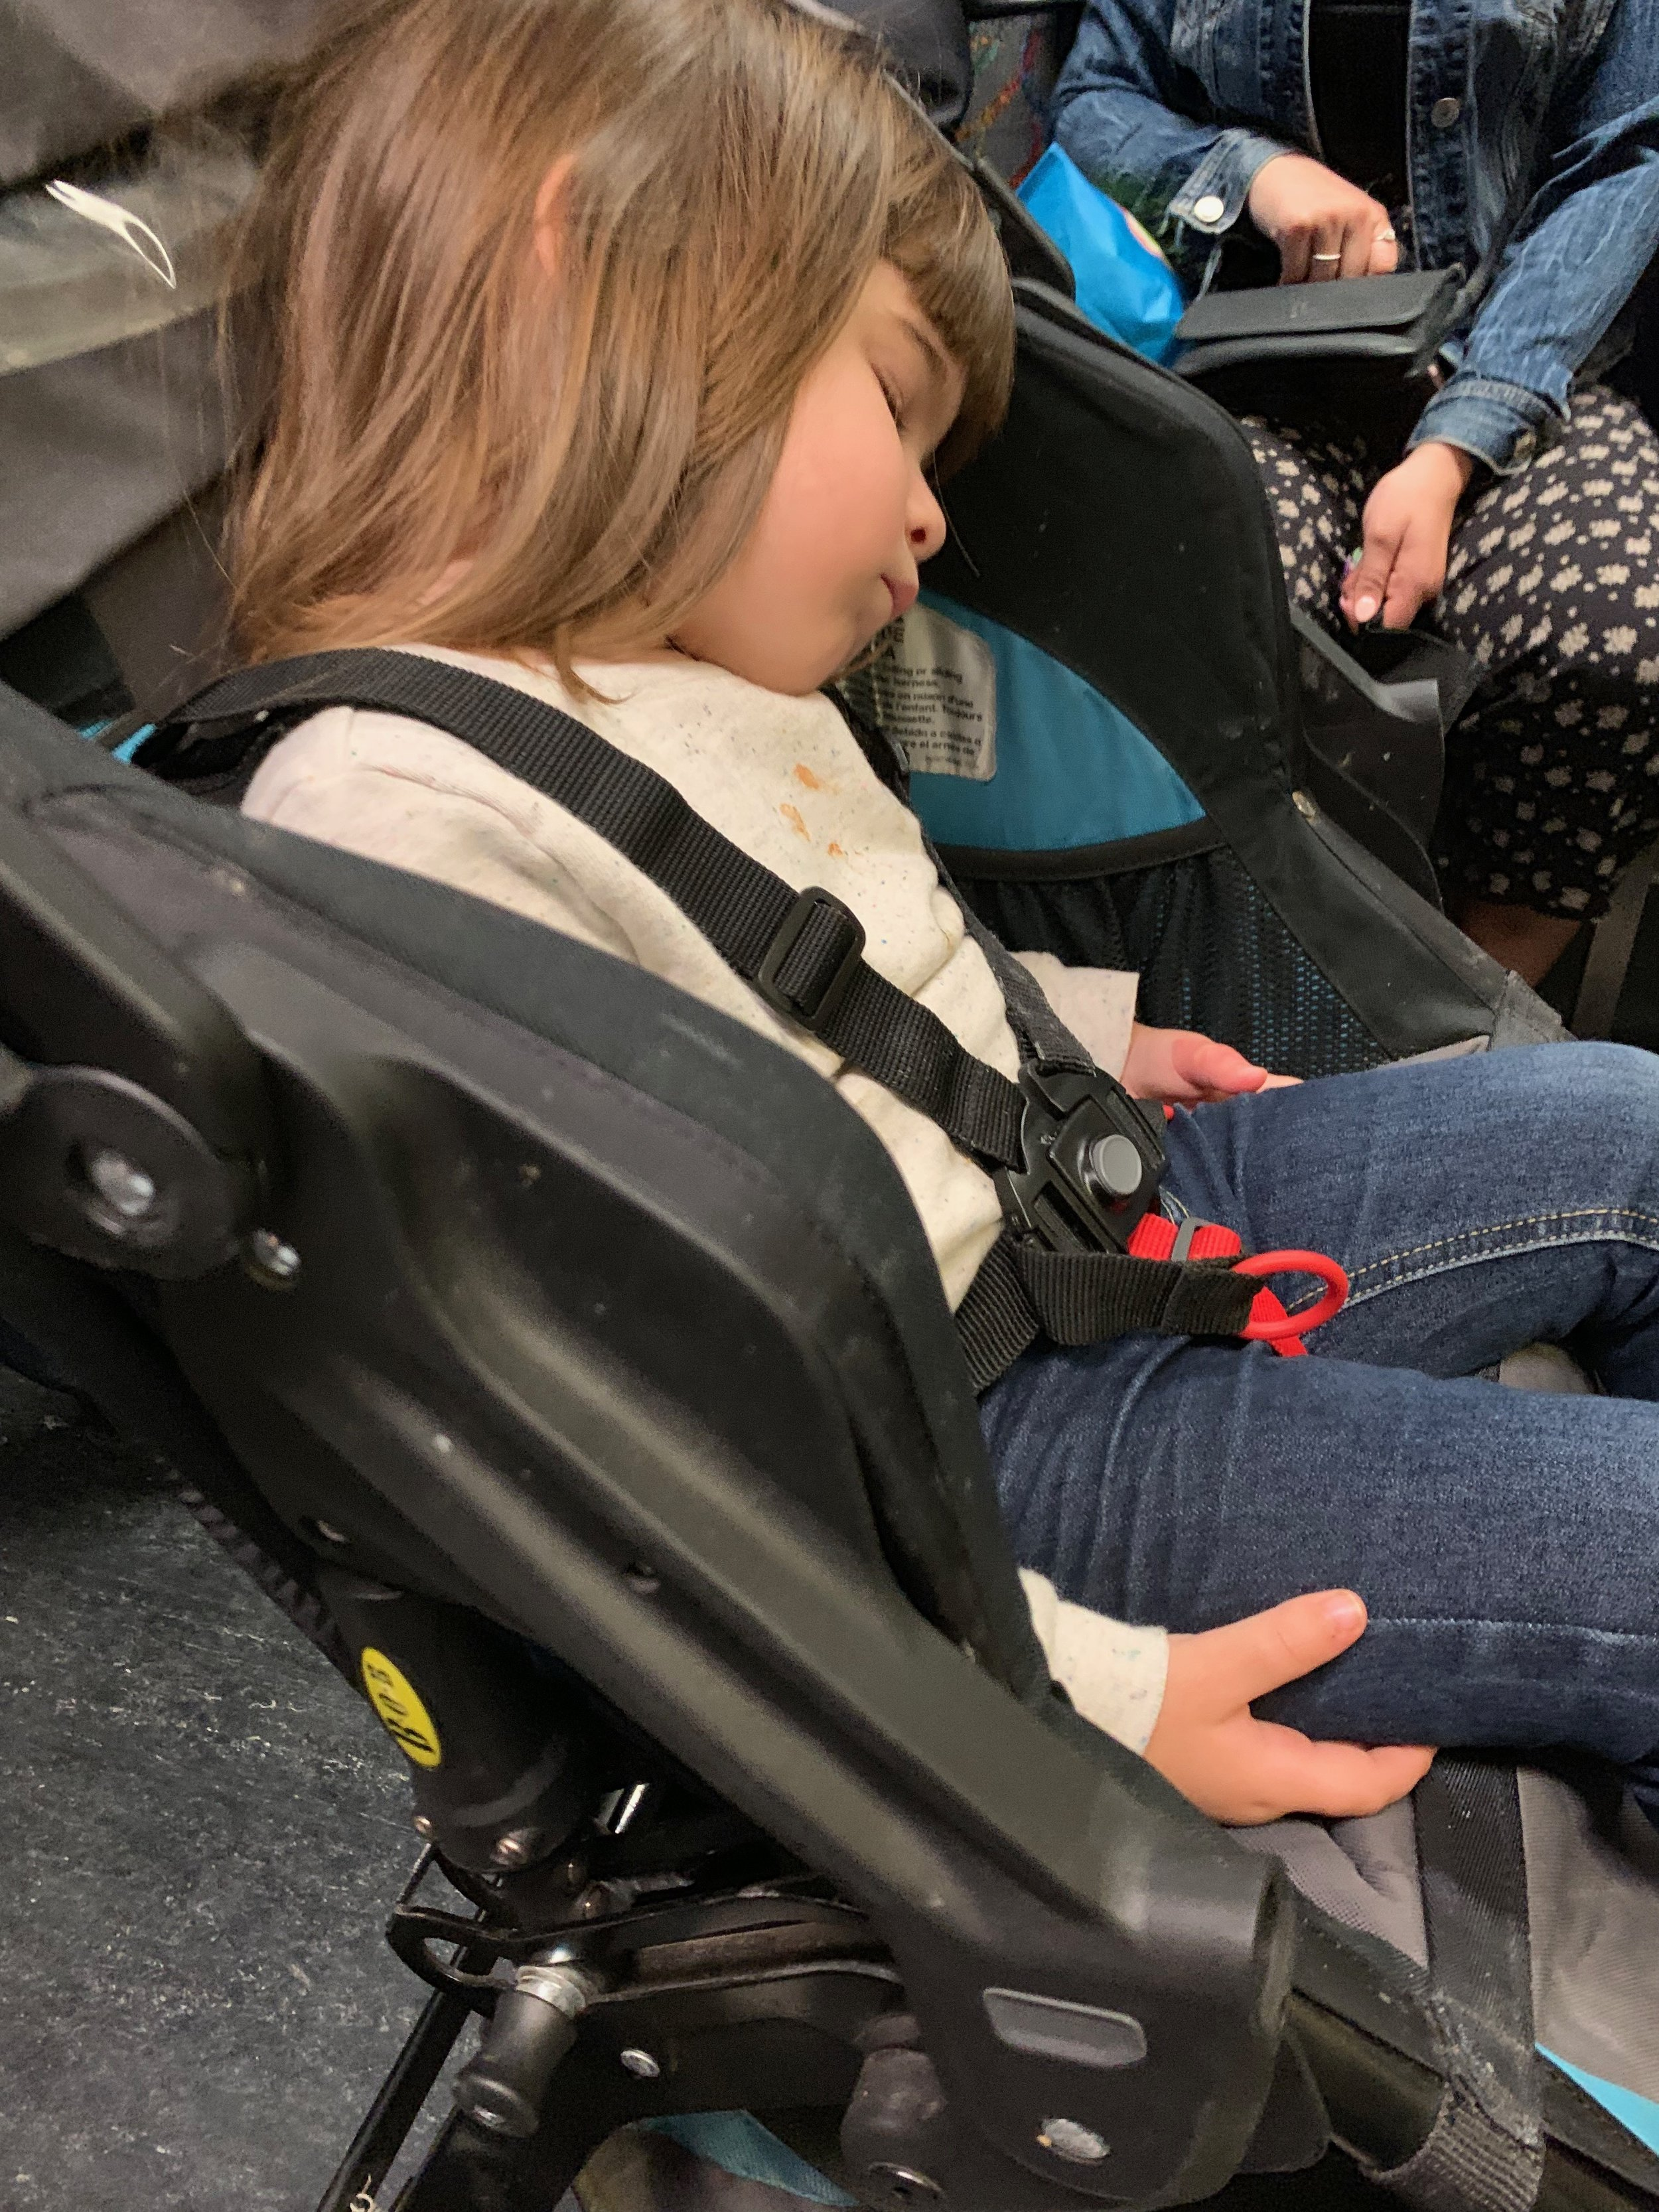 The only nap this sweet girl got in Boston - on the train between stops.